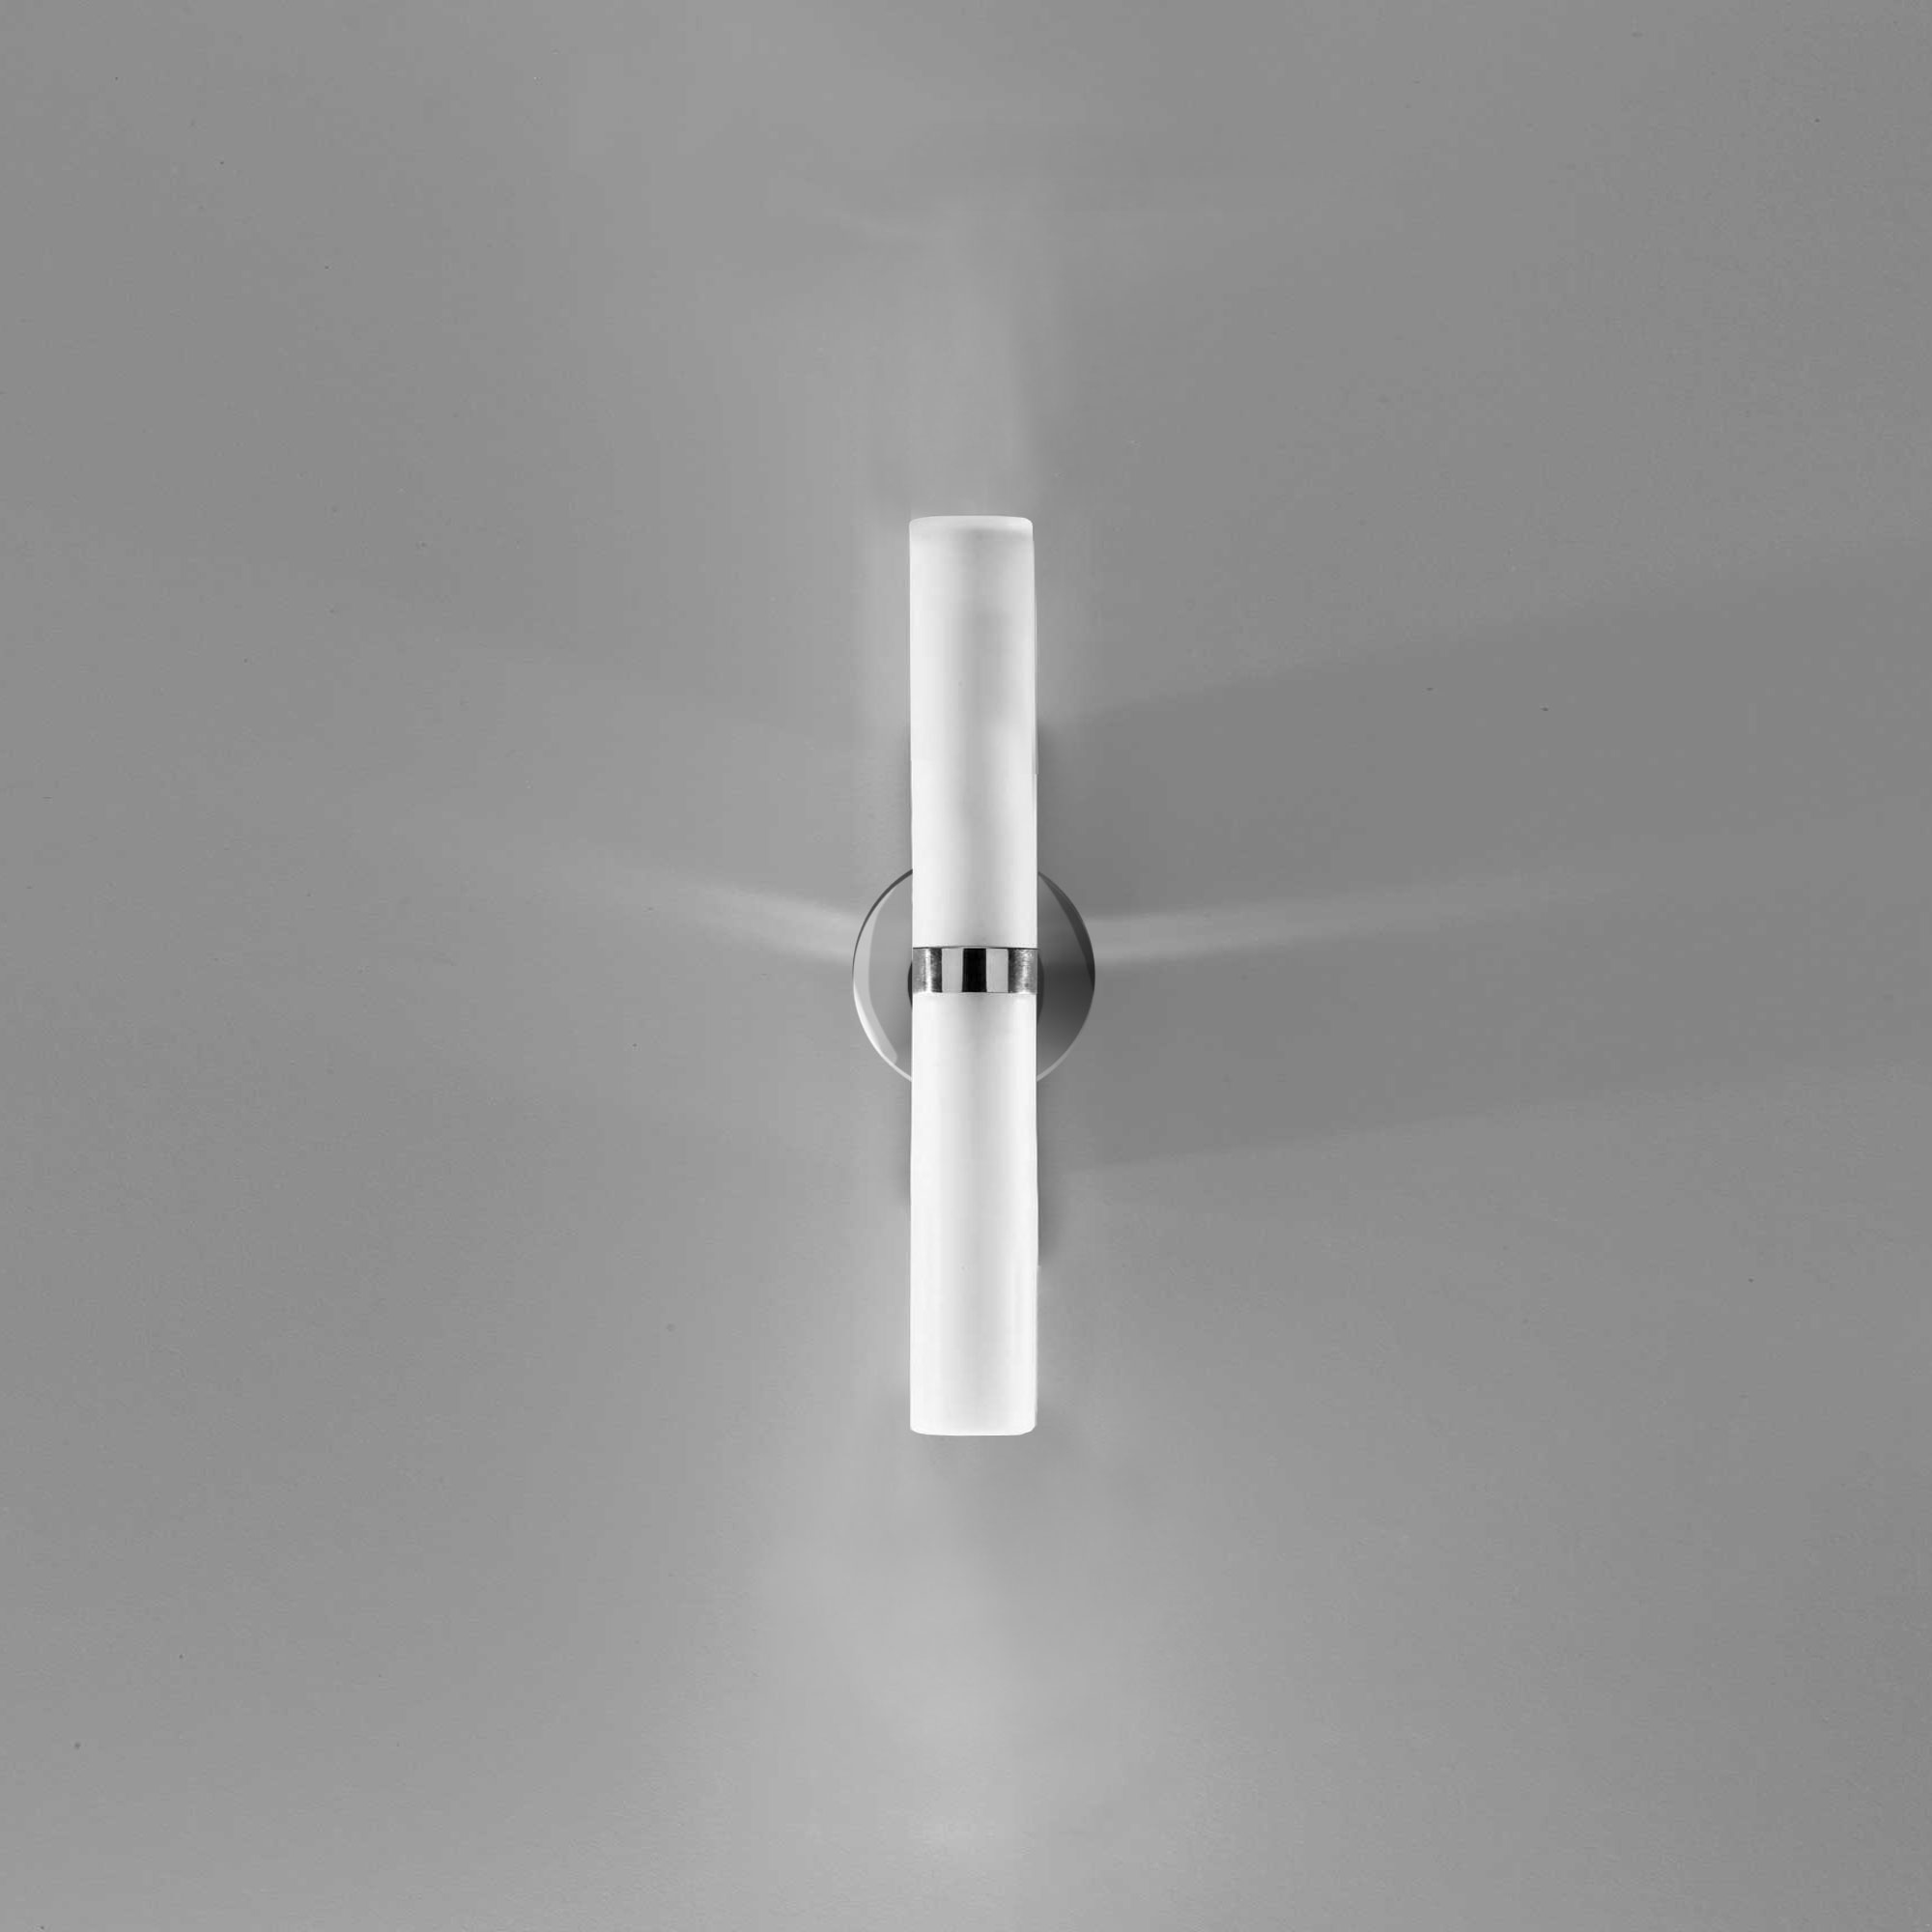 65 double ip 40 wall or ceiling light by ai lati lights ll9521 stick 65 double ip 40 wall or ceiling light by ai lati lights ll9521 audiocablefo